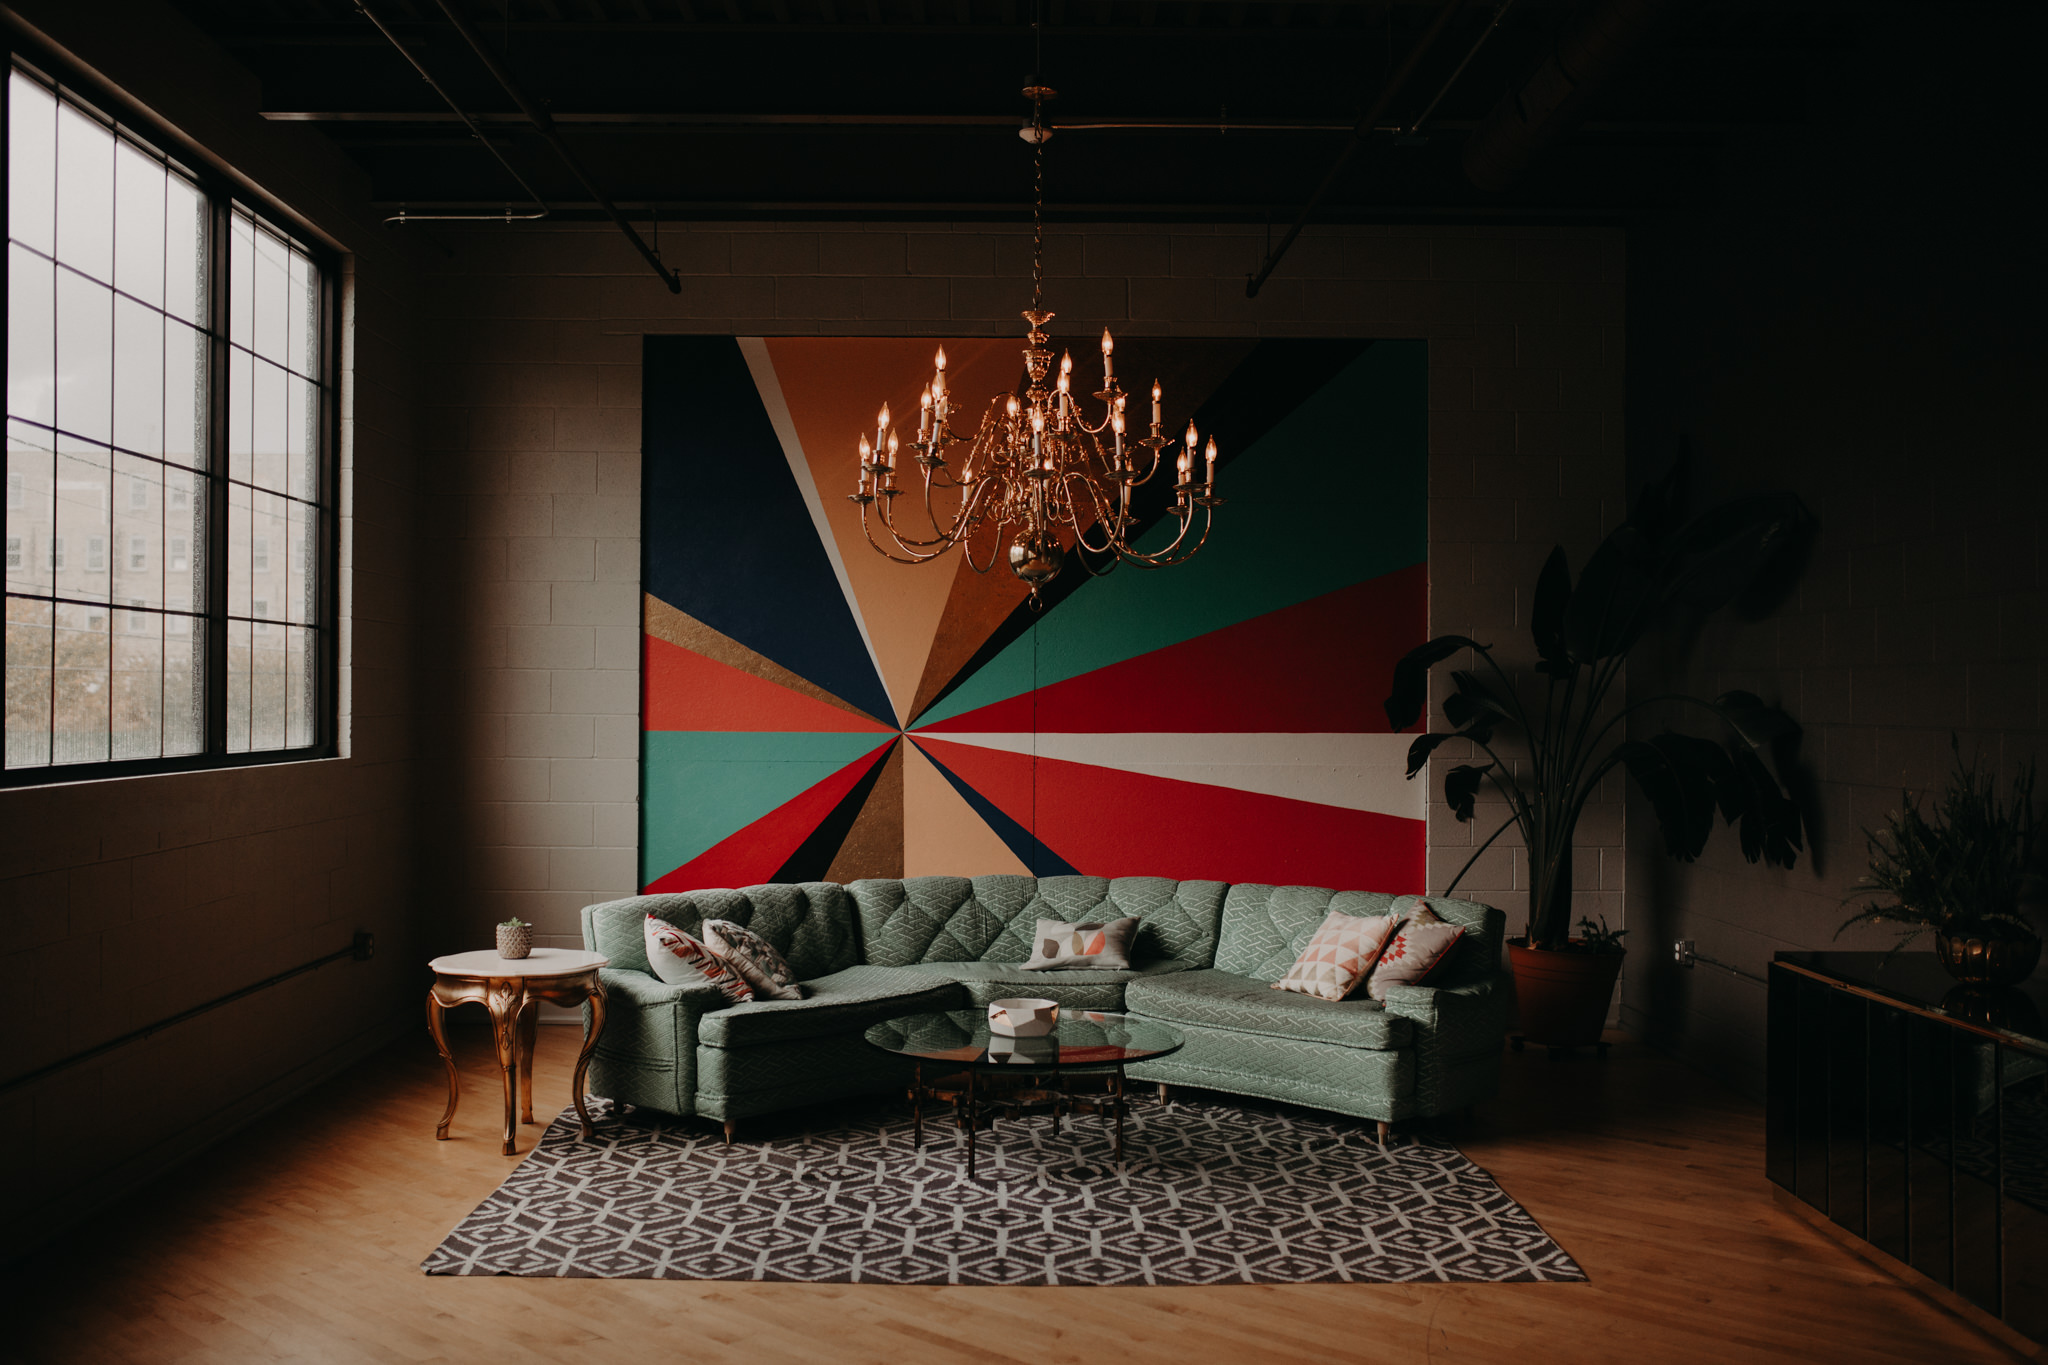 Rainbow mural with a blue couch and chandelier